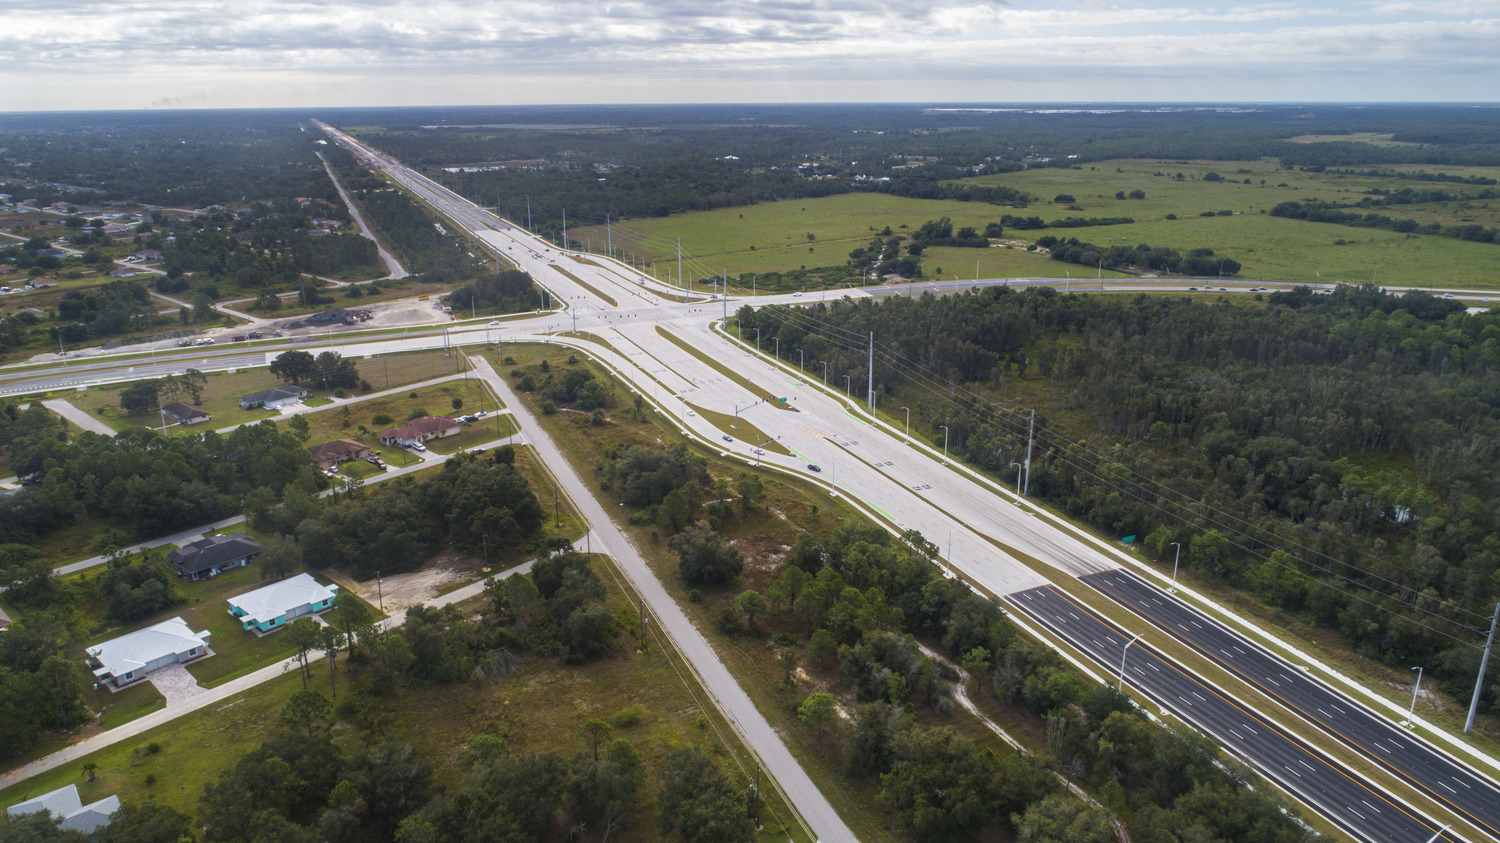 The SR 82 CFI project was named among Roads and Bridges magazine's Top 10 Roads of the Year in 2019. Photo courtesy of Mark Gall Photography.